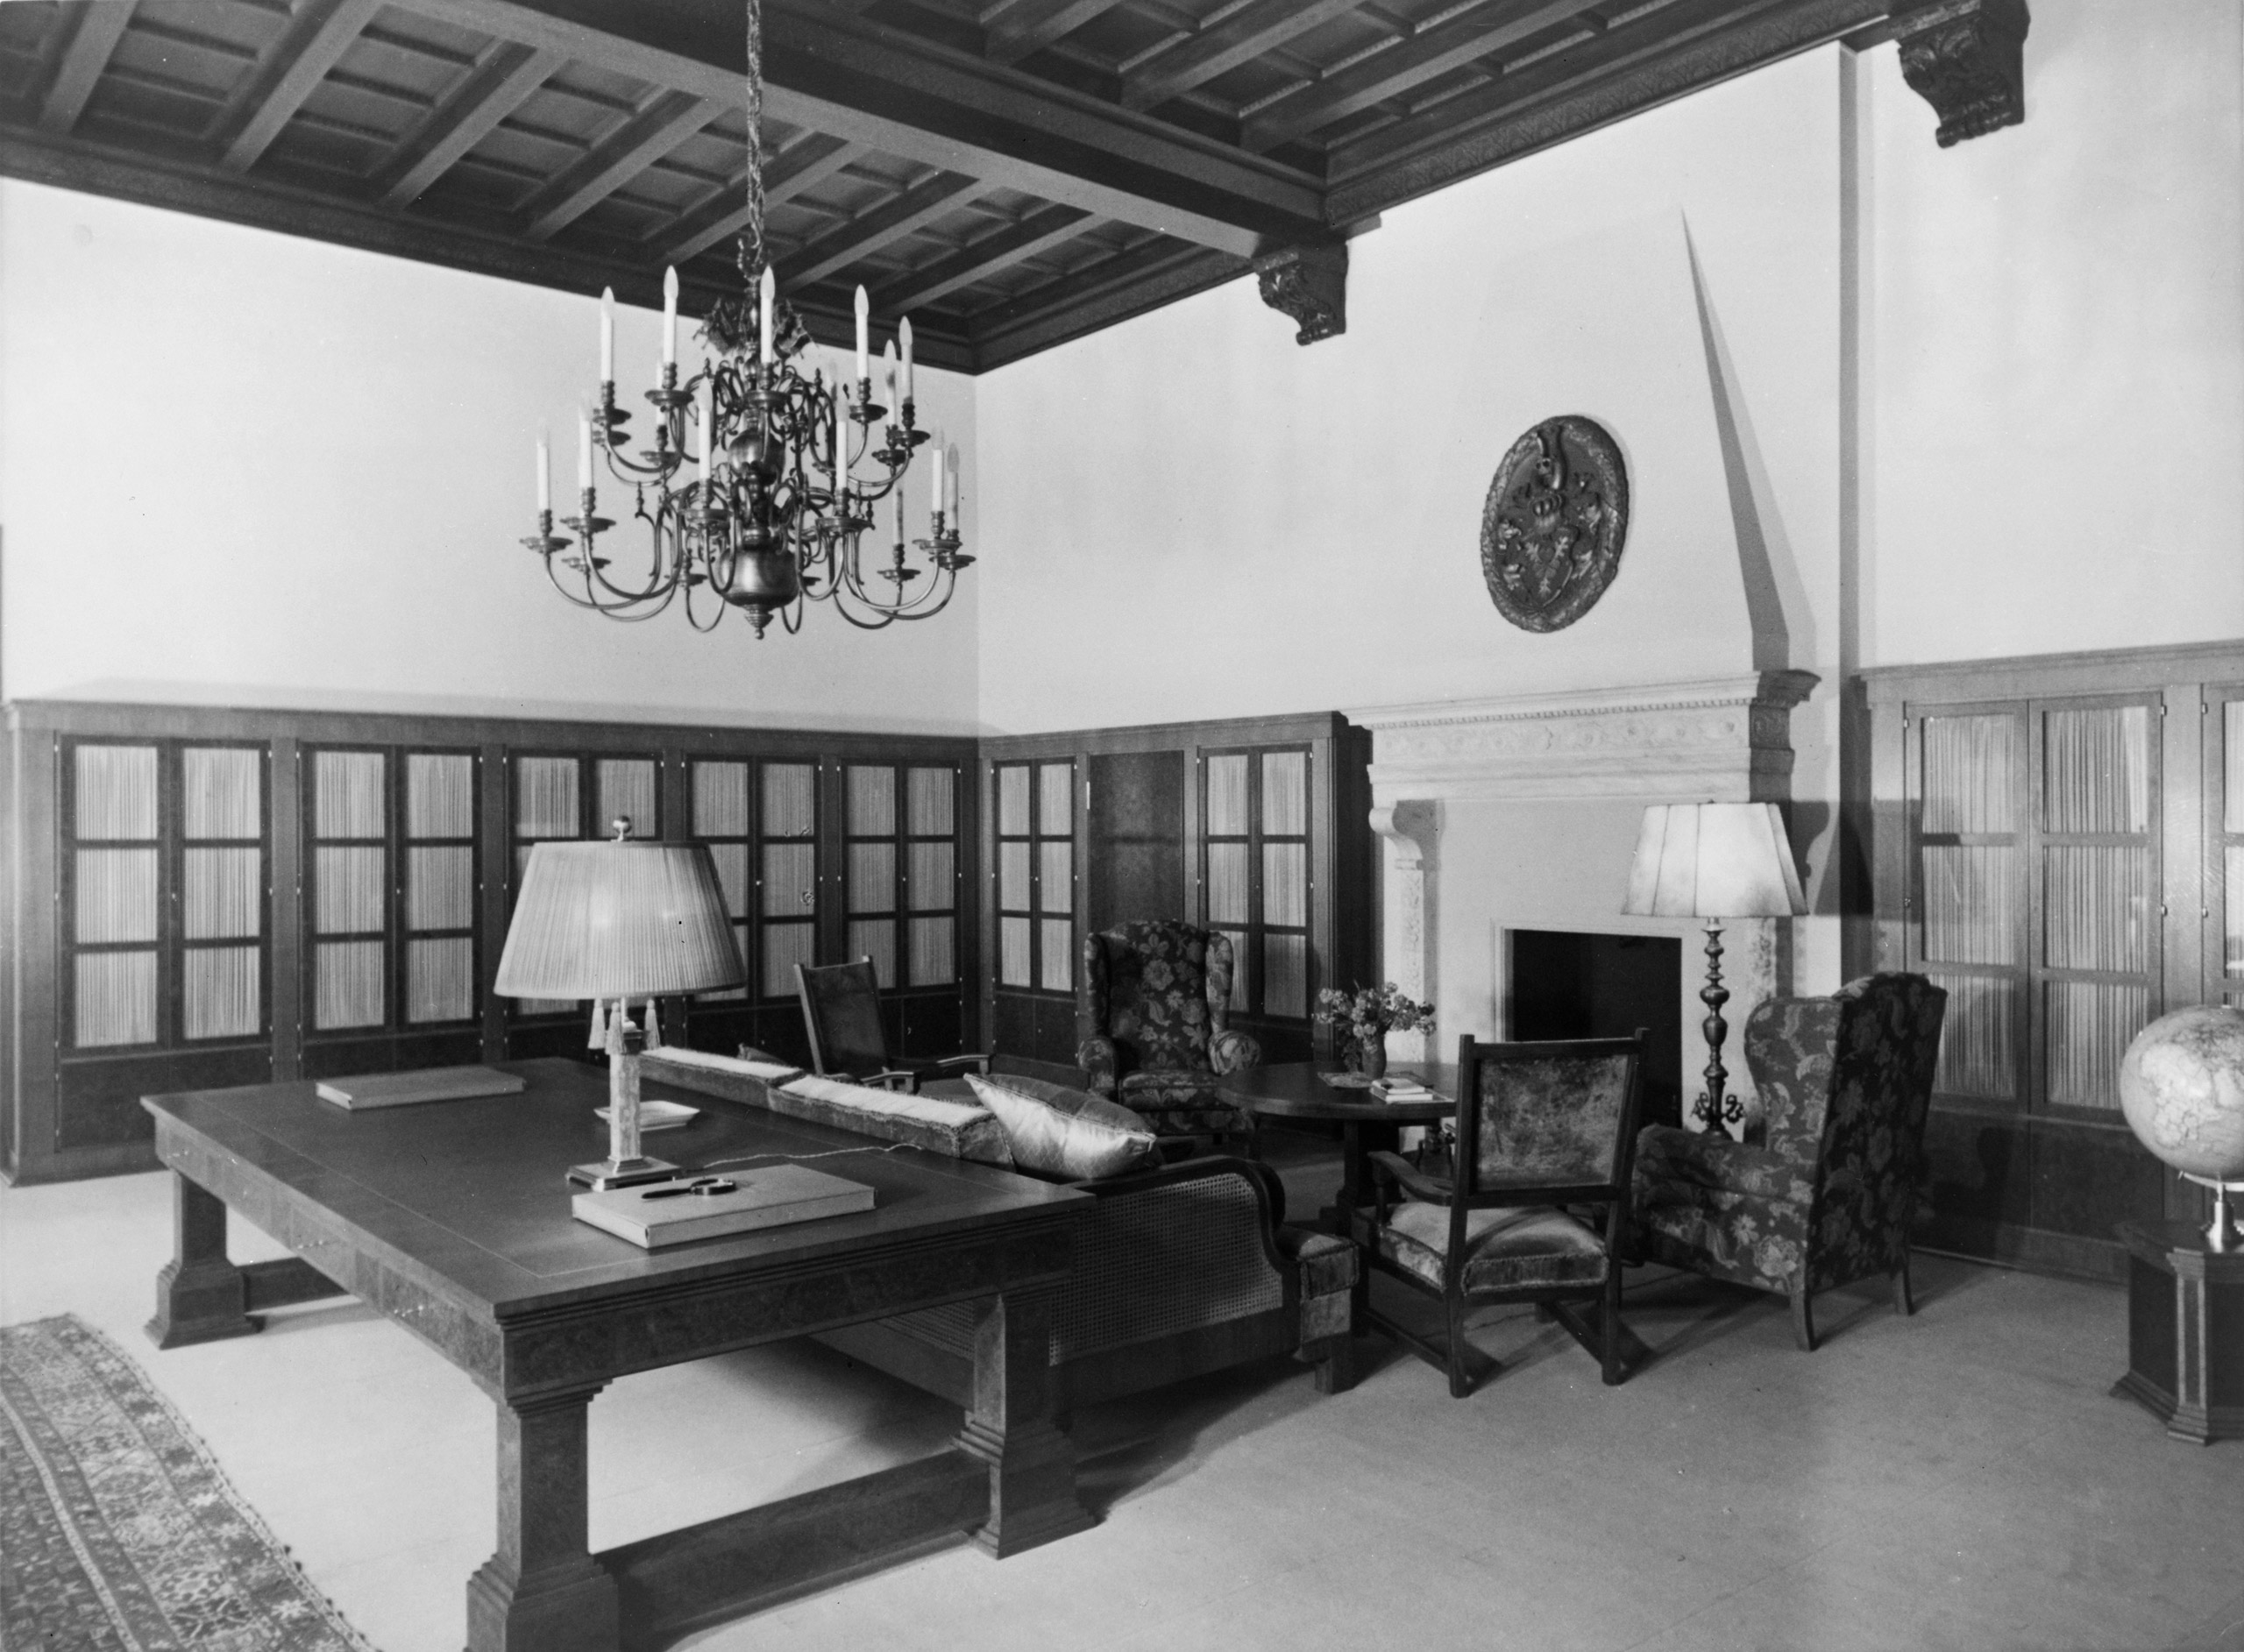 Heinrich Hoffmann, photography of Hitler's private library on the second floor of the Old Chancellery in Berlin after the 1934 renovation by the Atelier Troost.